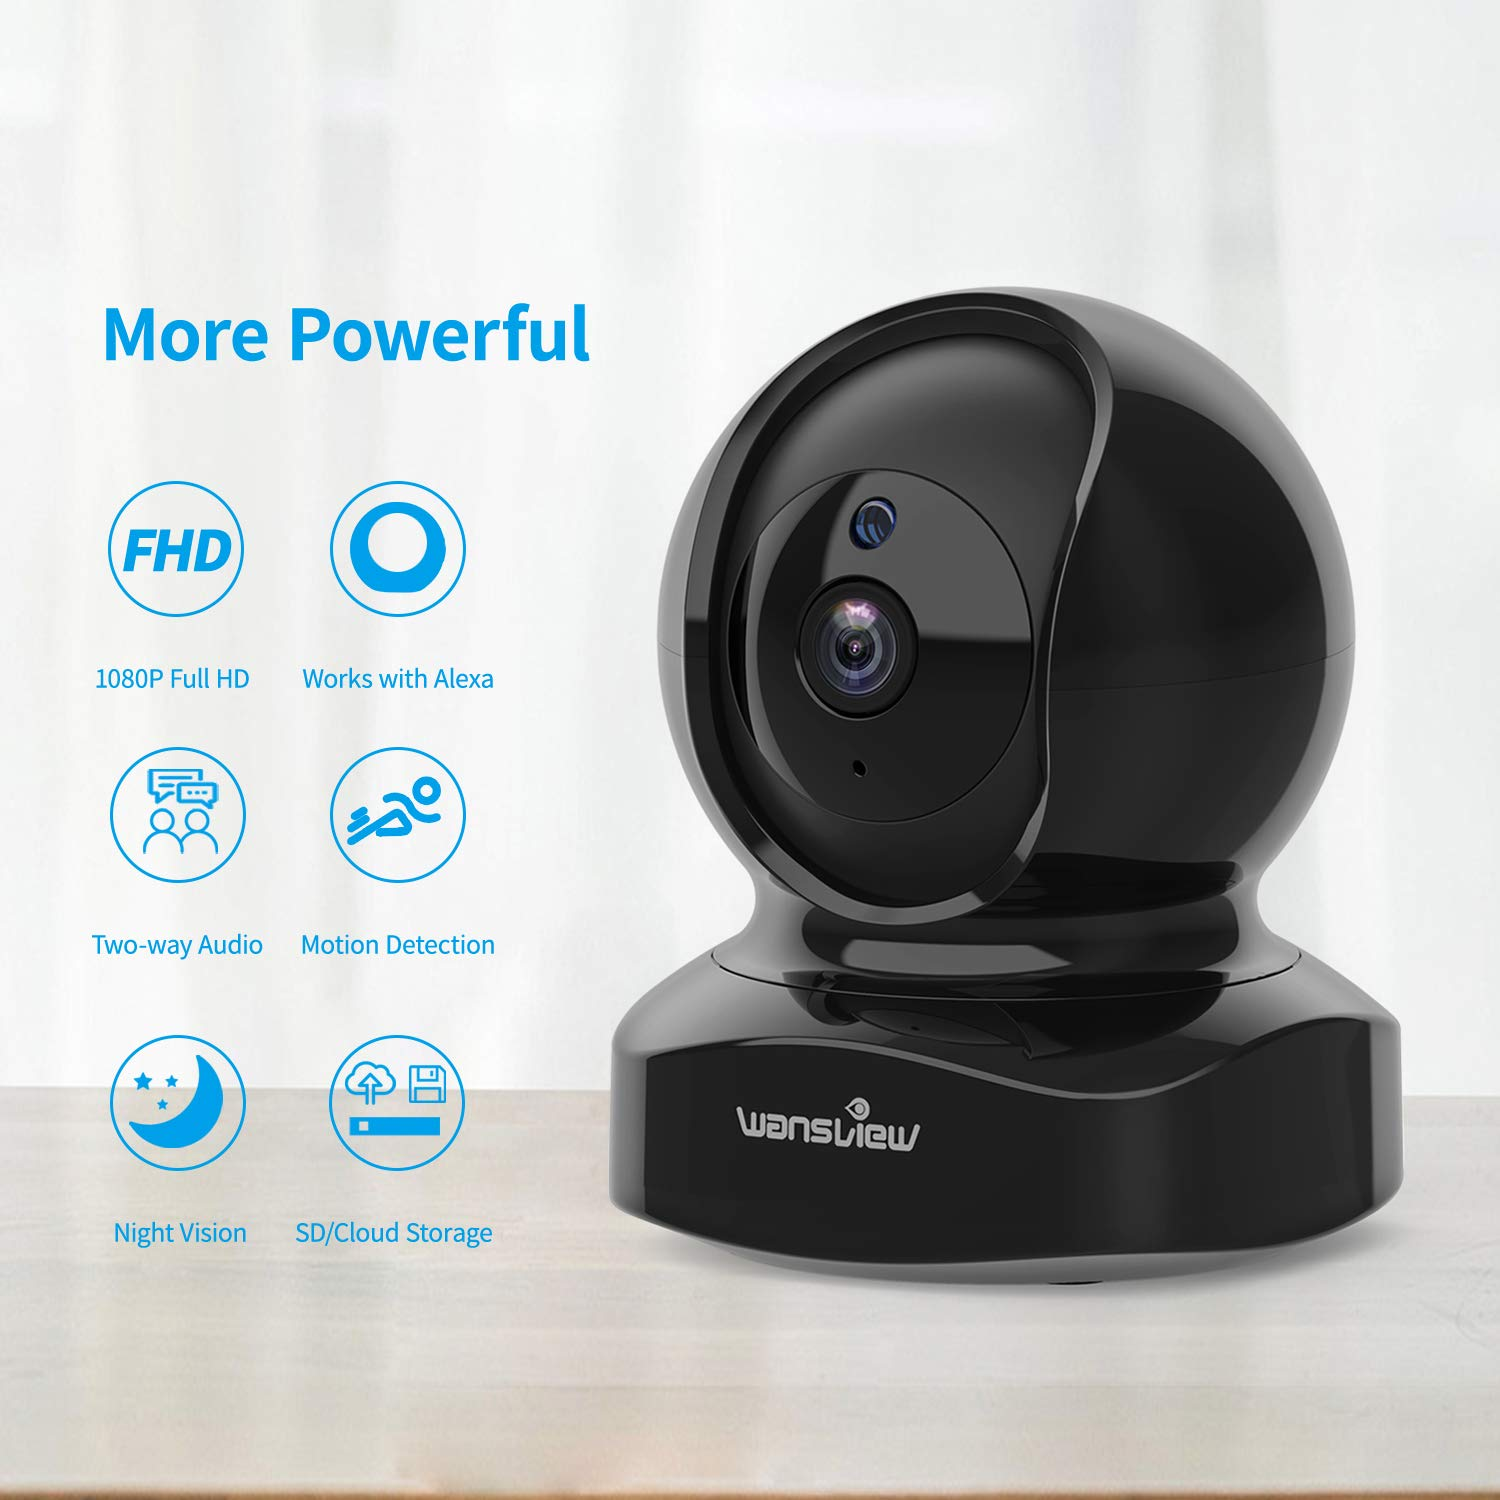 Wireless Security Camera, IP Camera 1080P HD Wansview, WiFi Home Indoor Camera for Baby Pet Nanny, Motion Detection, 2 Way Audio Night Vision, Works with Alexa, with TF Card Slot and Cloud